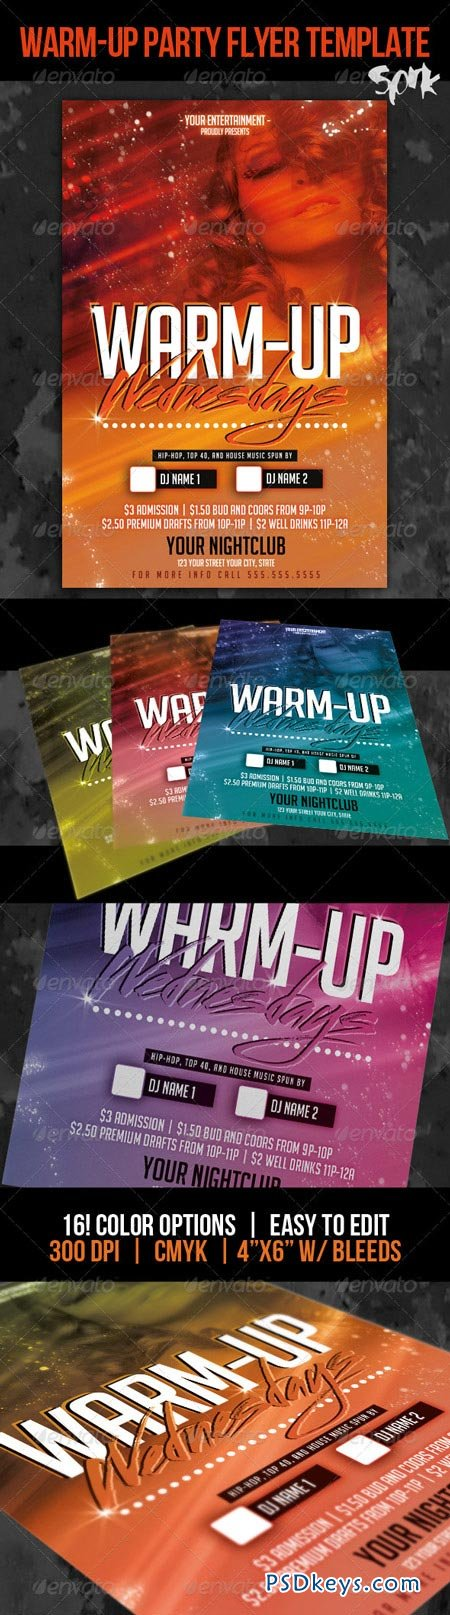 Warm Up Wednesdays Party Flyer or Poster Template 3203349